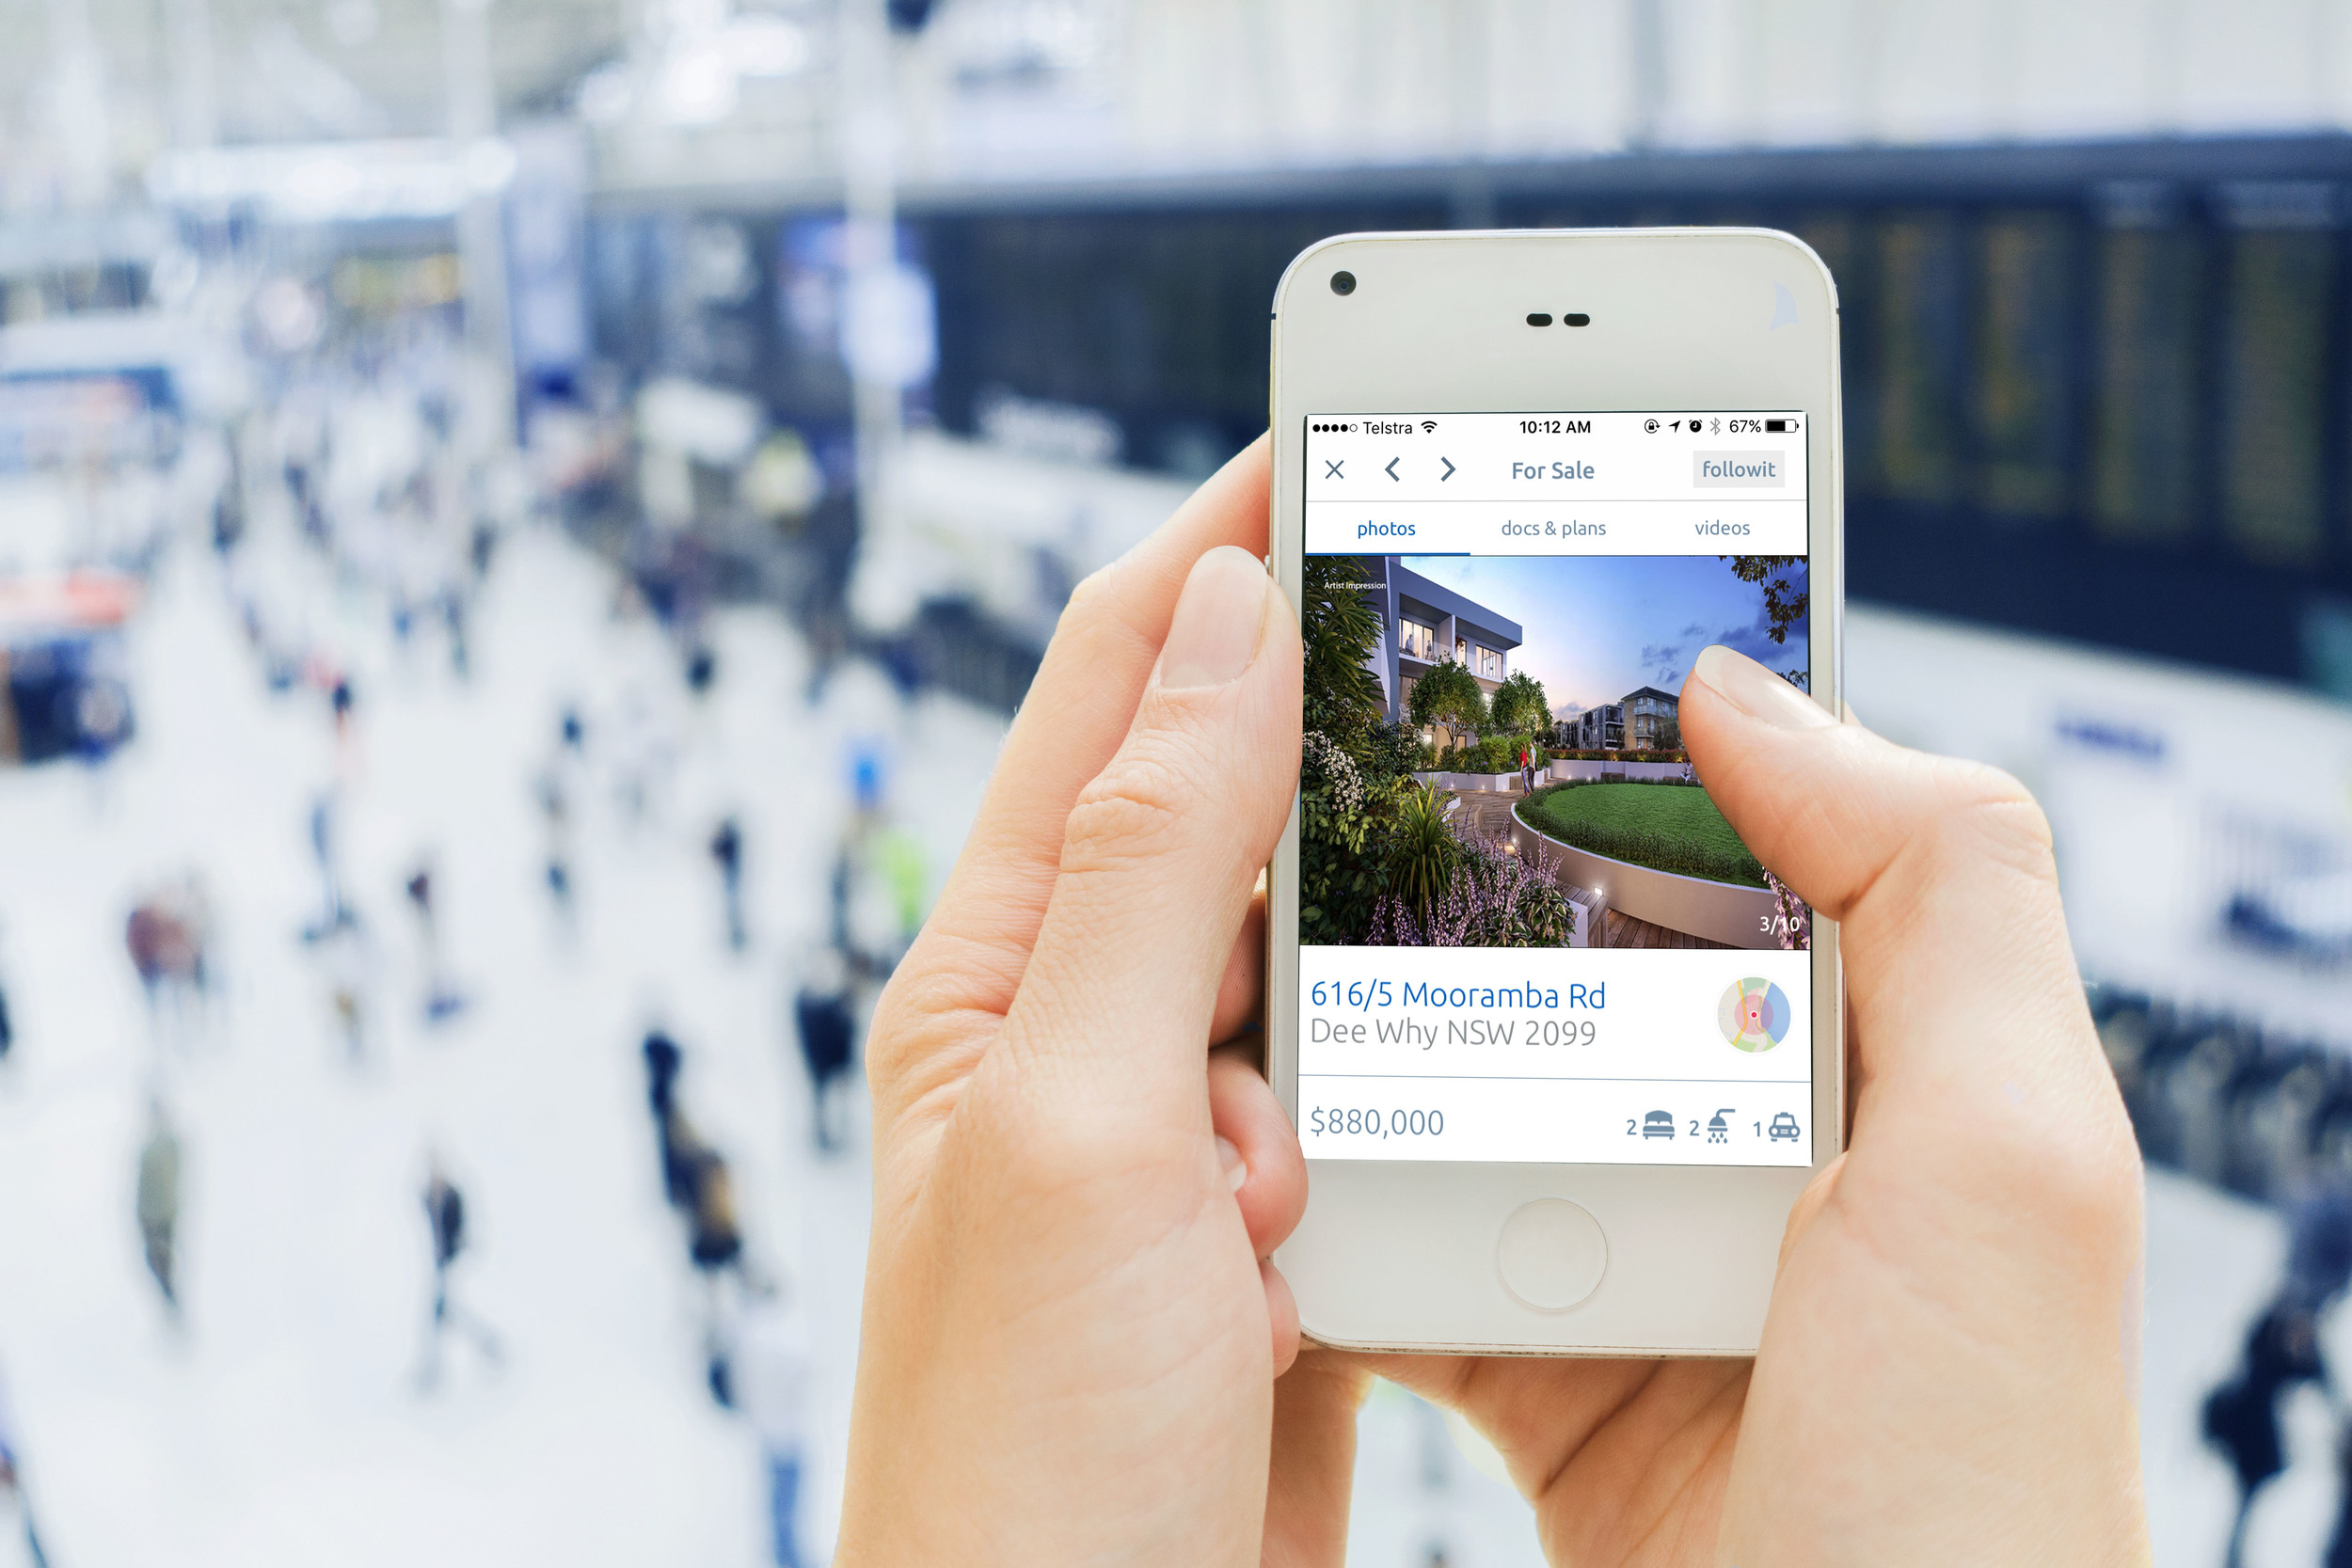 A new Australian app promising to change the way Australians interact with real estate listings is set to launch nationally under the guidance of a former Facebook and Amazon executive.  followit, an app and desktop platform that gives users a push notification whenever a property they're interested in is on the market, is backed by Macquarie Bank. Most major Australian real estate firms, including, LJ Hooker, Century 21, and Belle Property have already signed on.  Real estate coach and followit executive director Michael Sheargold describes it as a live communication platform for the real estate industry and consumers.